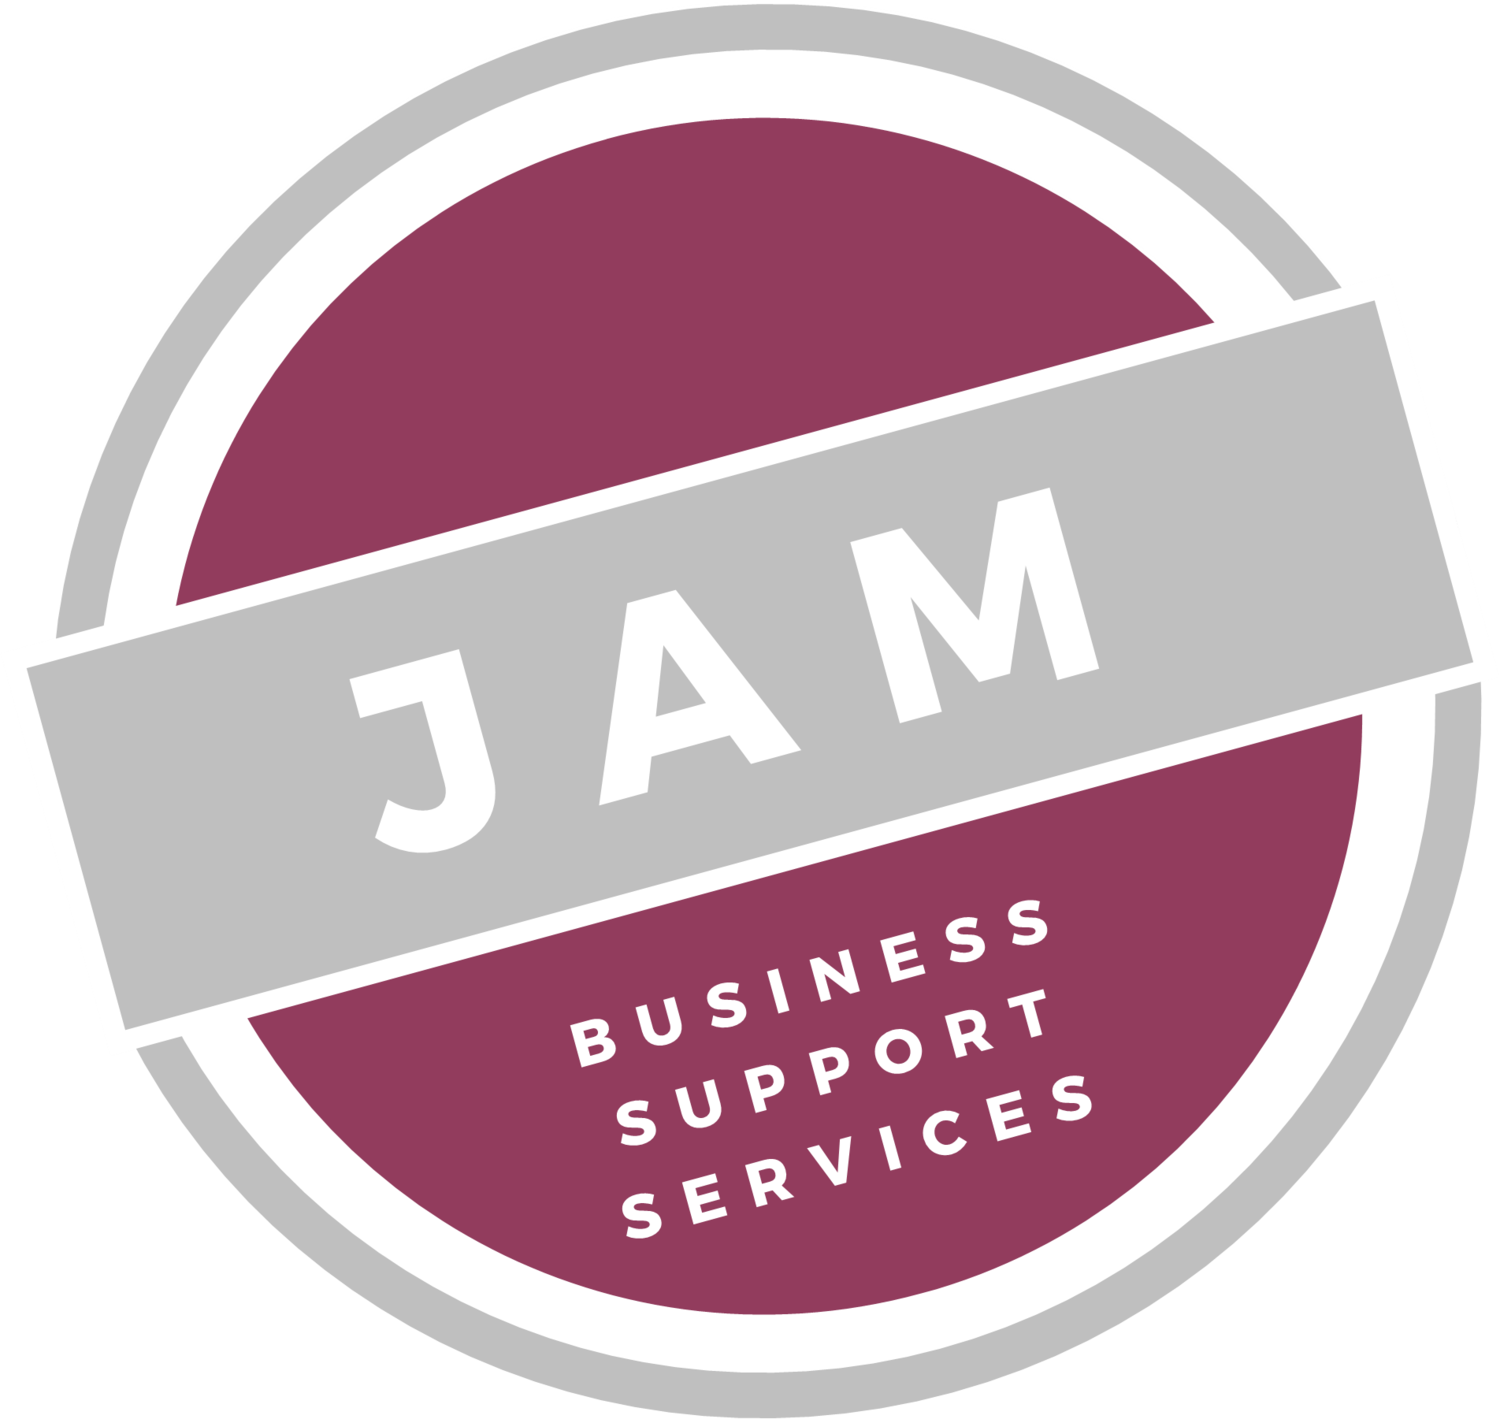 Australian Virtual Assistant business | Blue Mountains based VA | Remote support | JAM Business Support Services